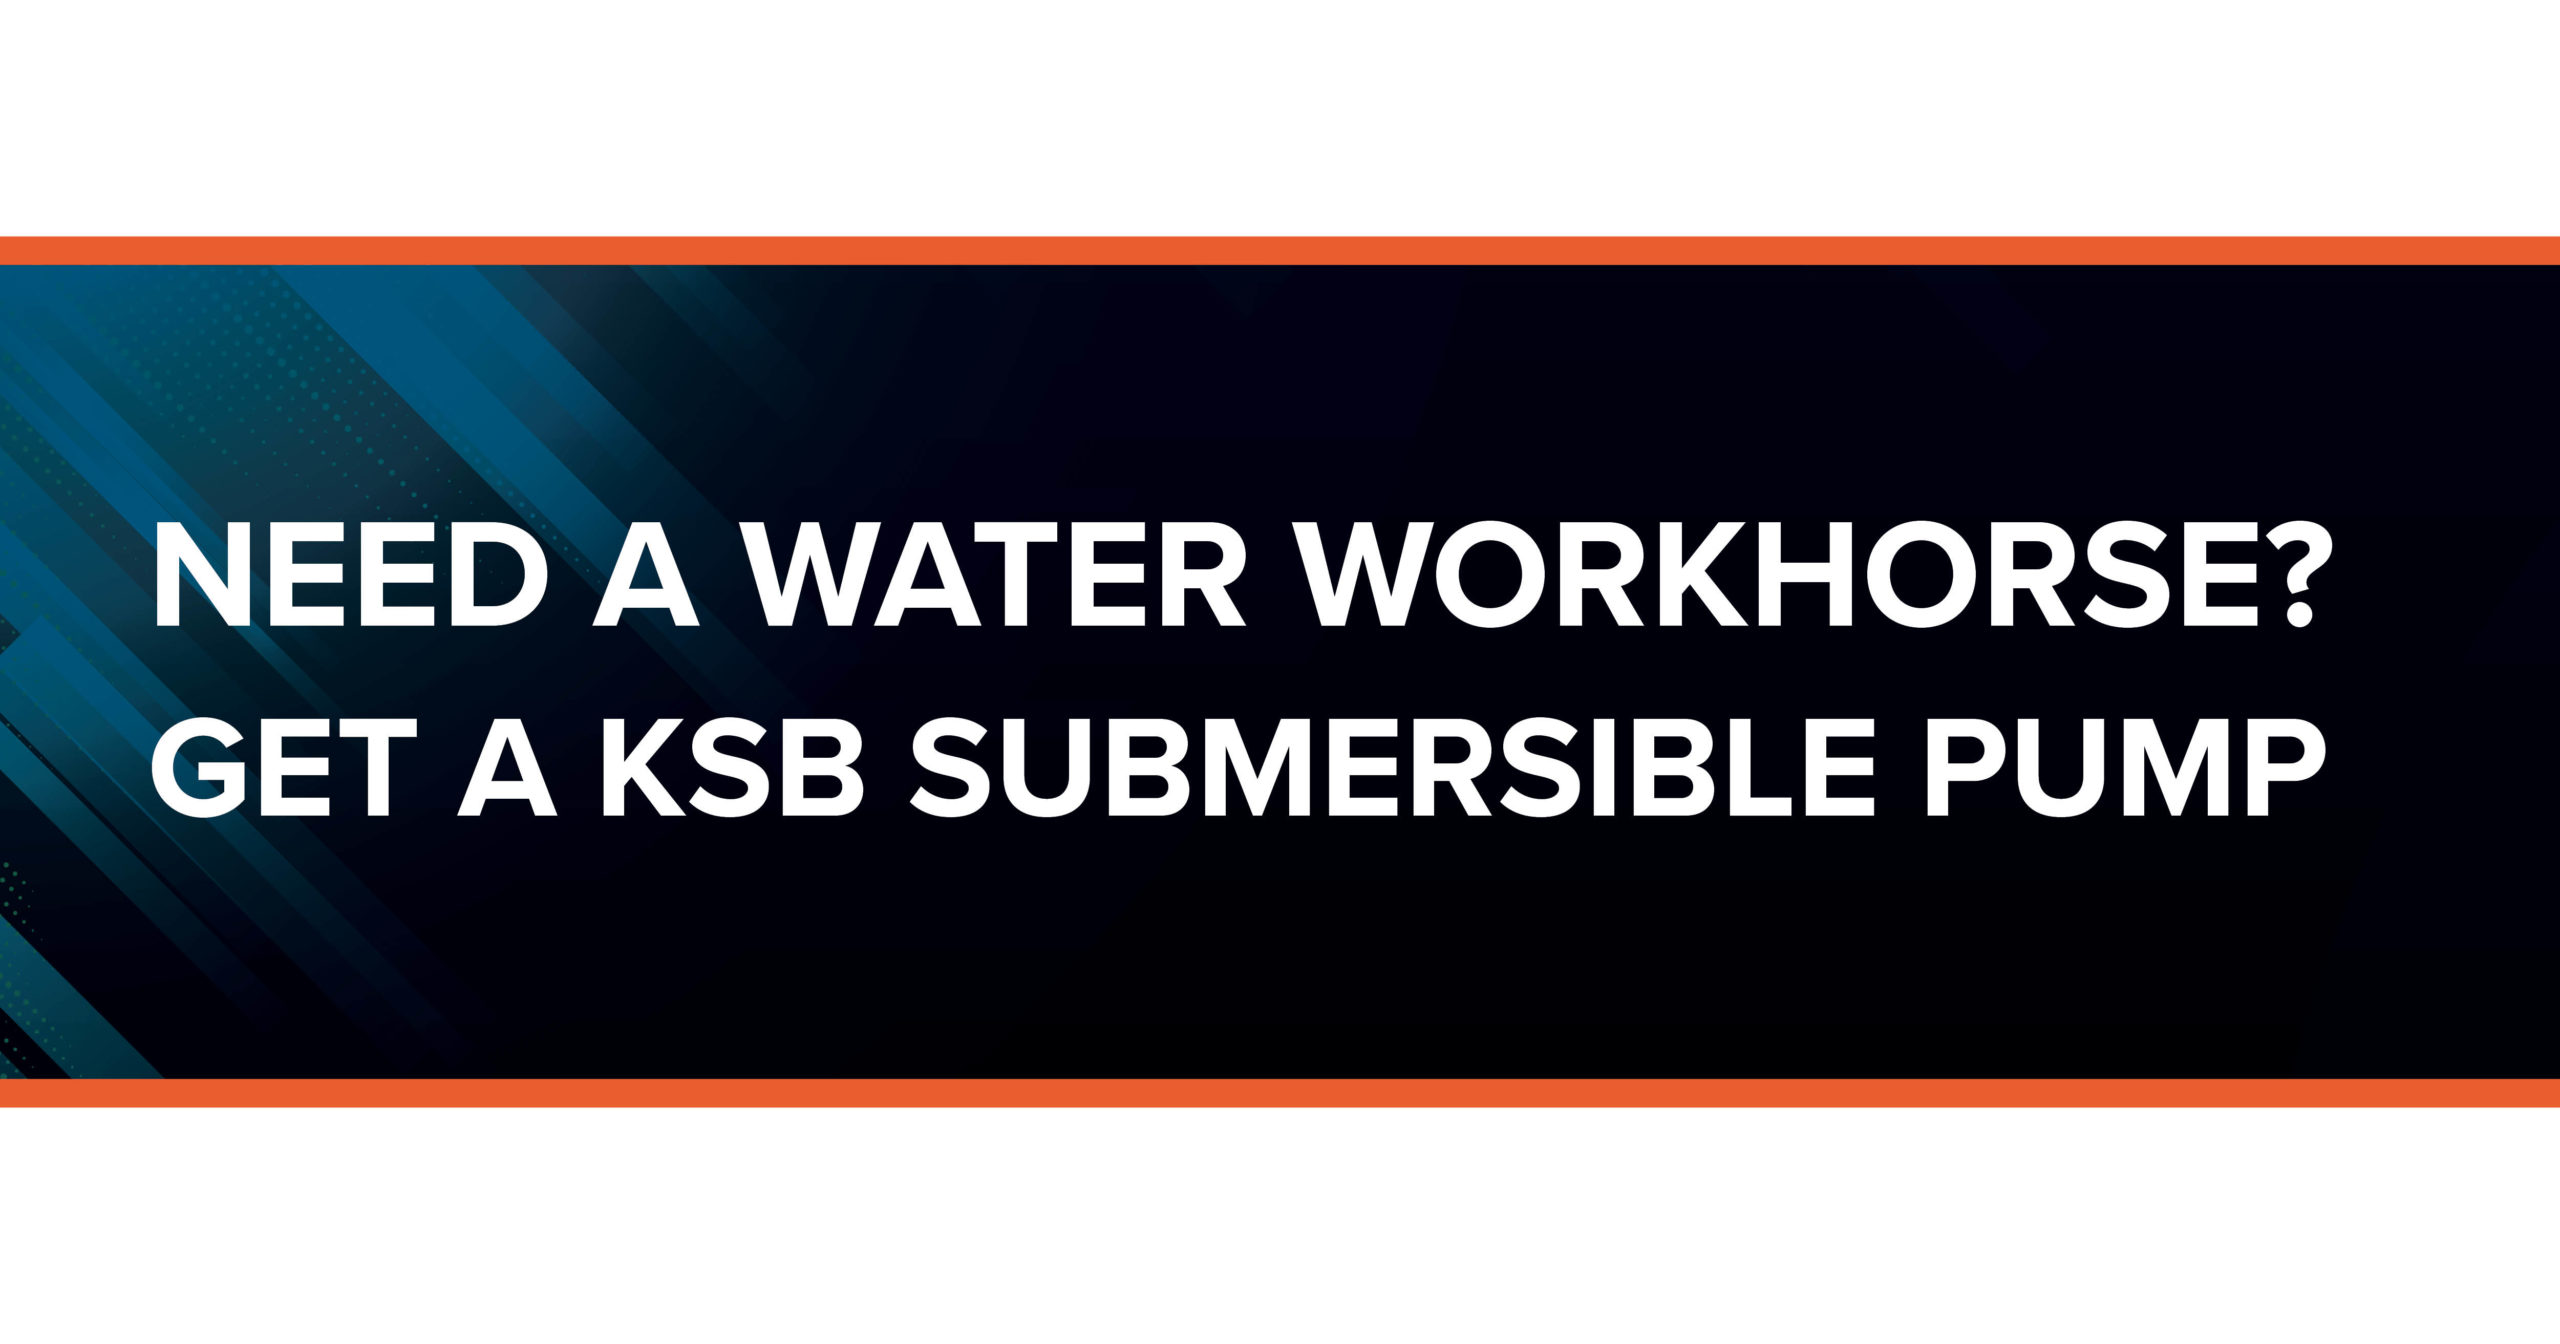 Need a Water Workhorse? Get a KSB Submersible Pump!